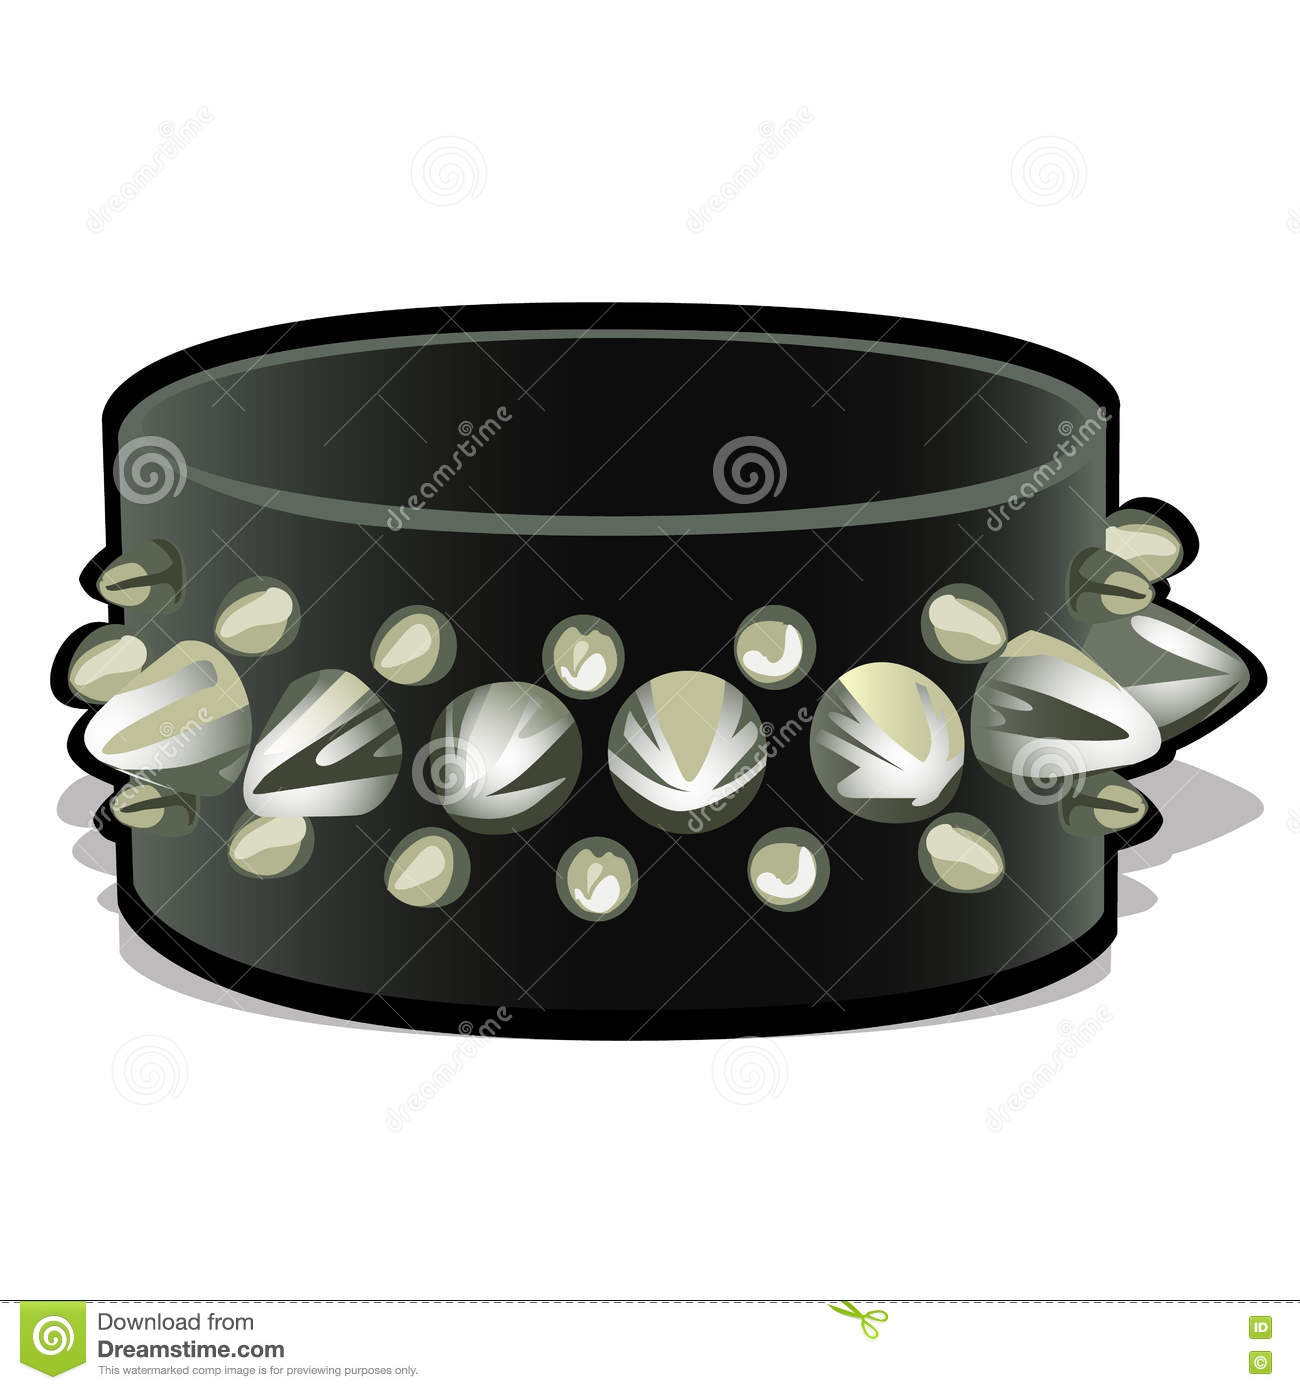 Black Leather Wristband With Metal Spikes Stock Vector.